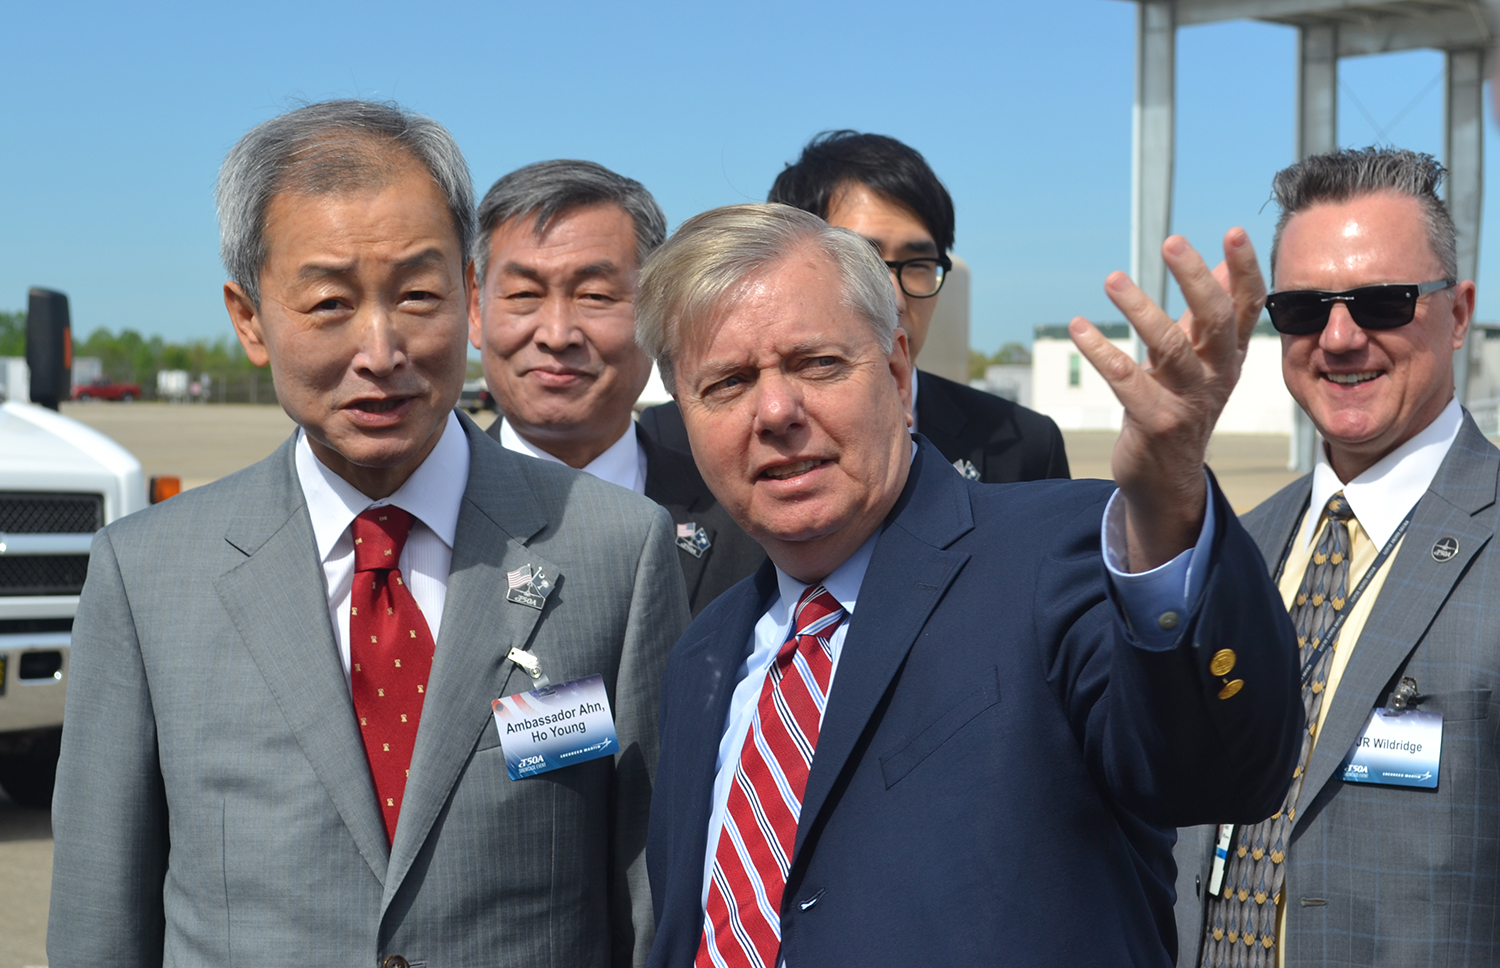 Sen. Lindsey Graham, R-S.C., discusses the T-50A fighter/trainer aircraft with An Ho-young, South Korea ambassador to the United States during the T-50A showcase event at the Lockheed Martin Greenville Operations site on Monday, April 10, 2017 (Photo/Matthew Clark)